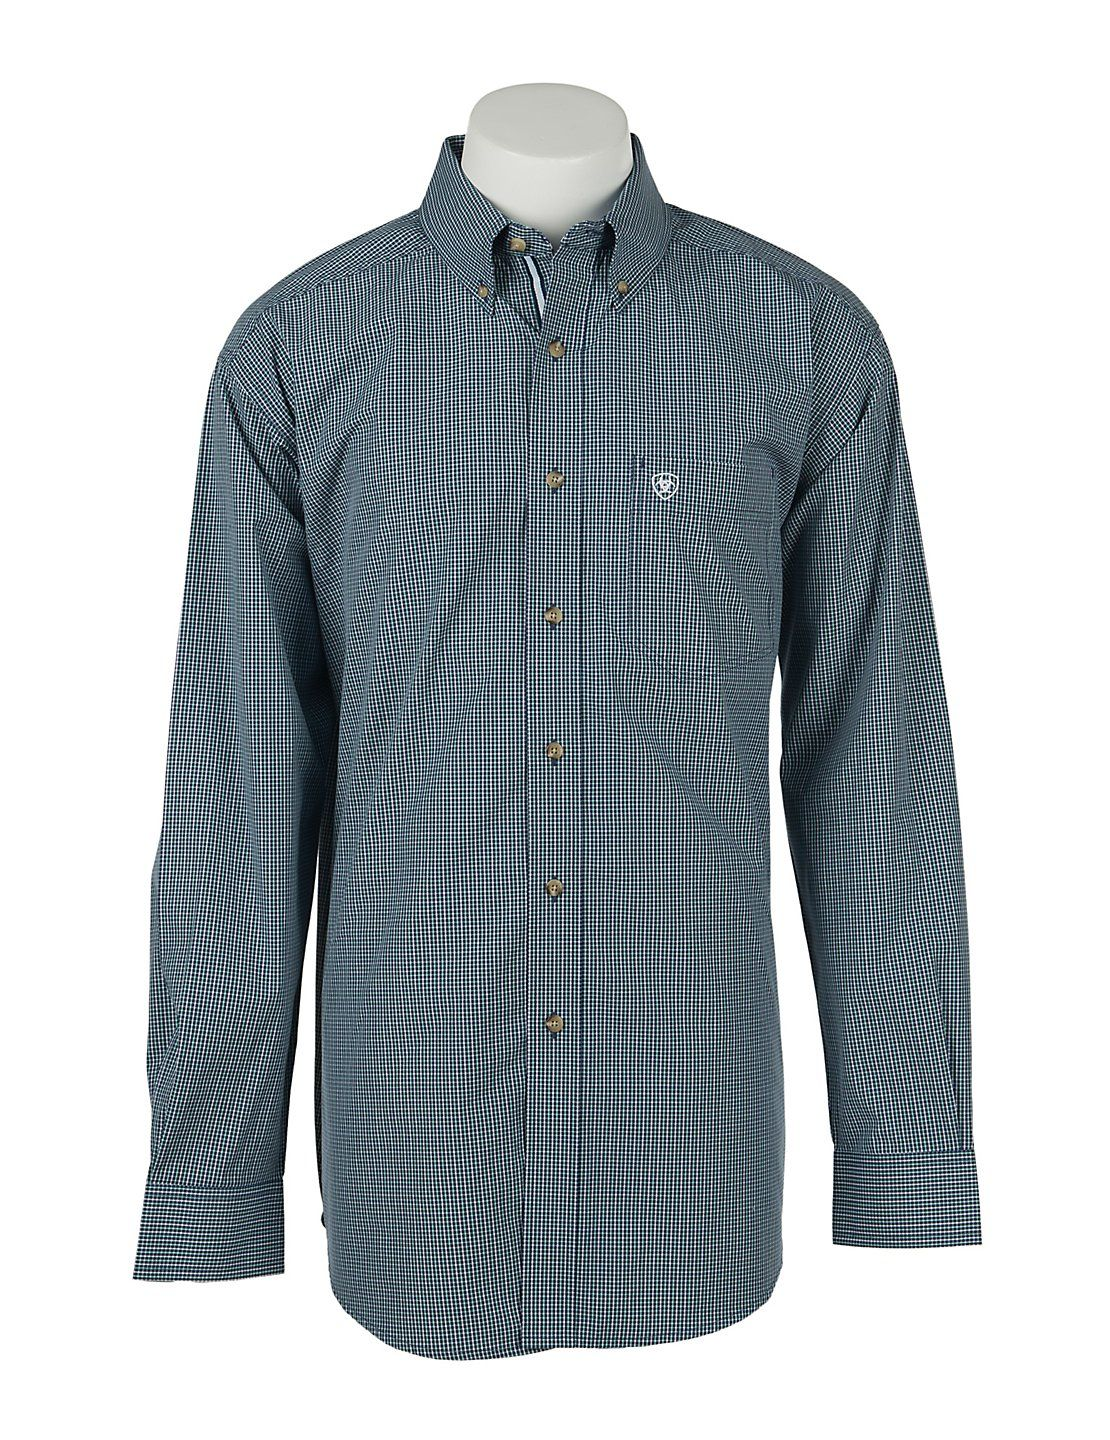 Ariat Mens Nocturnal Blue Grid Western Shirt | Cavender's